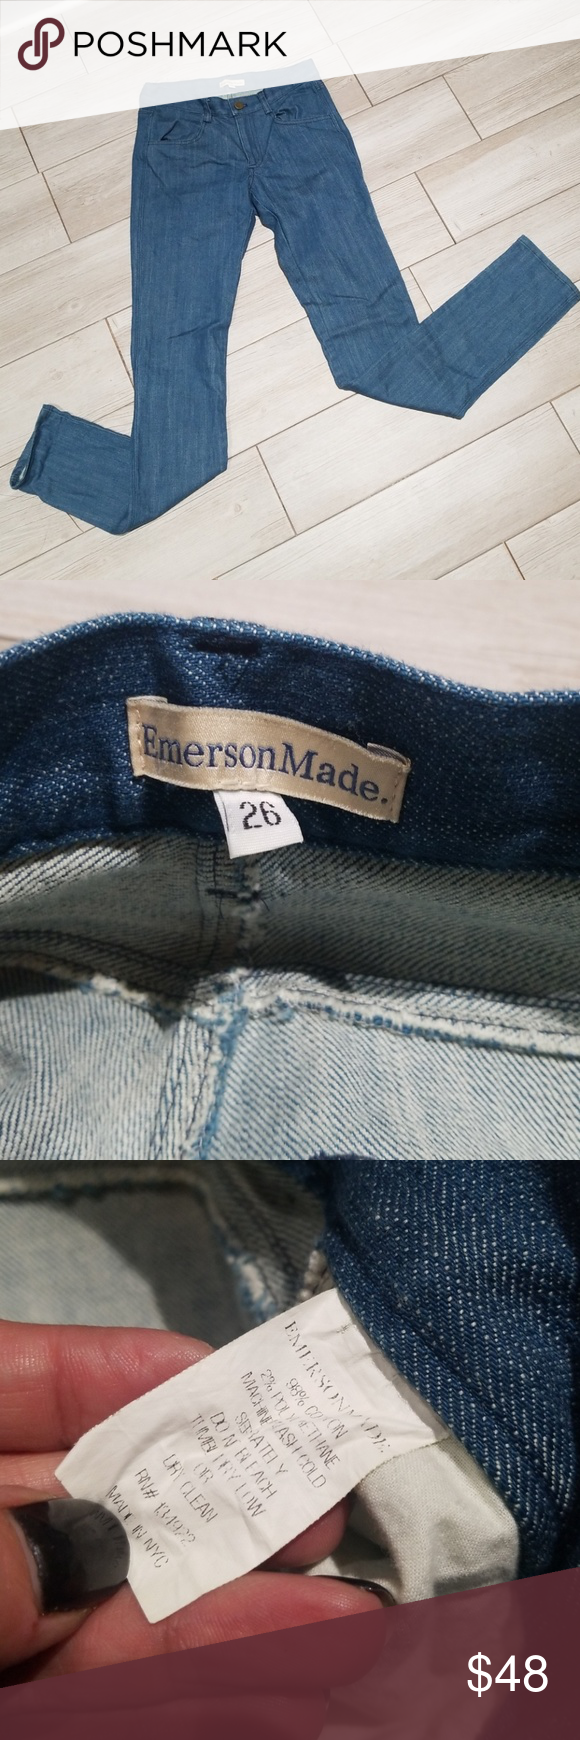 NWOT Emerson Fry / Emersonmade denim Jean's sz. 26 These are new without tags  Emersonmade  Size 26 From The Emerson Fry company Made in NYC  Excellent new condition   Measures  14 across waist  17.5 across hips  8 rise 32.5 inseam 40.5 overall length Emerson Fry Jeans Skinny #emersonfry